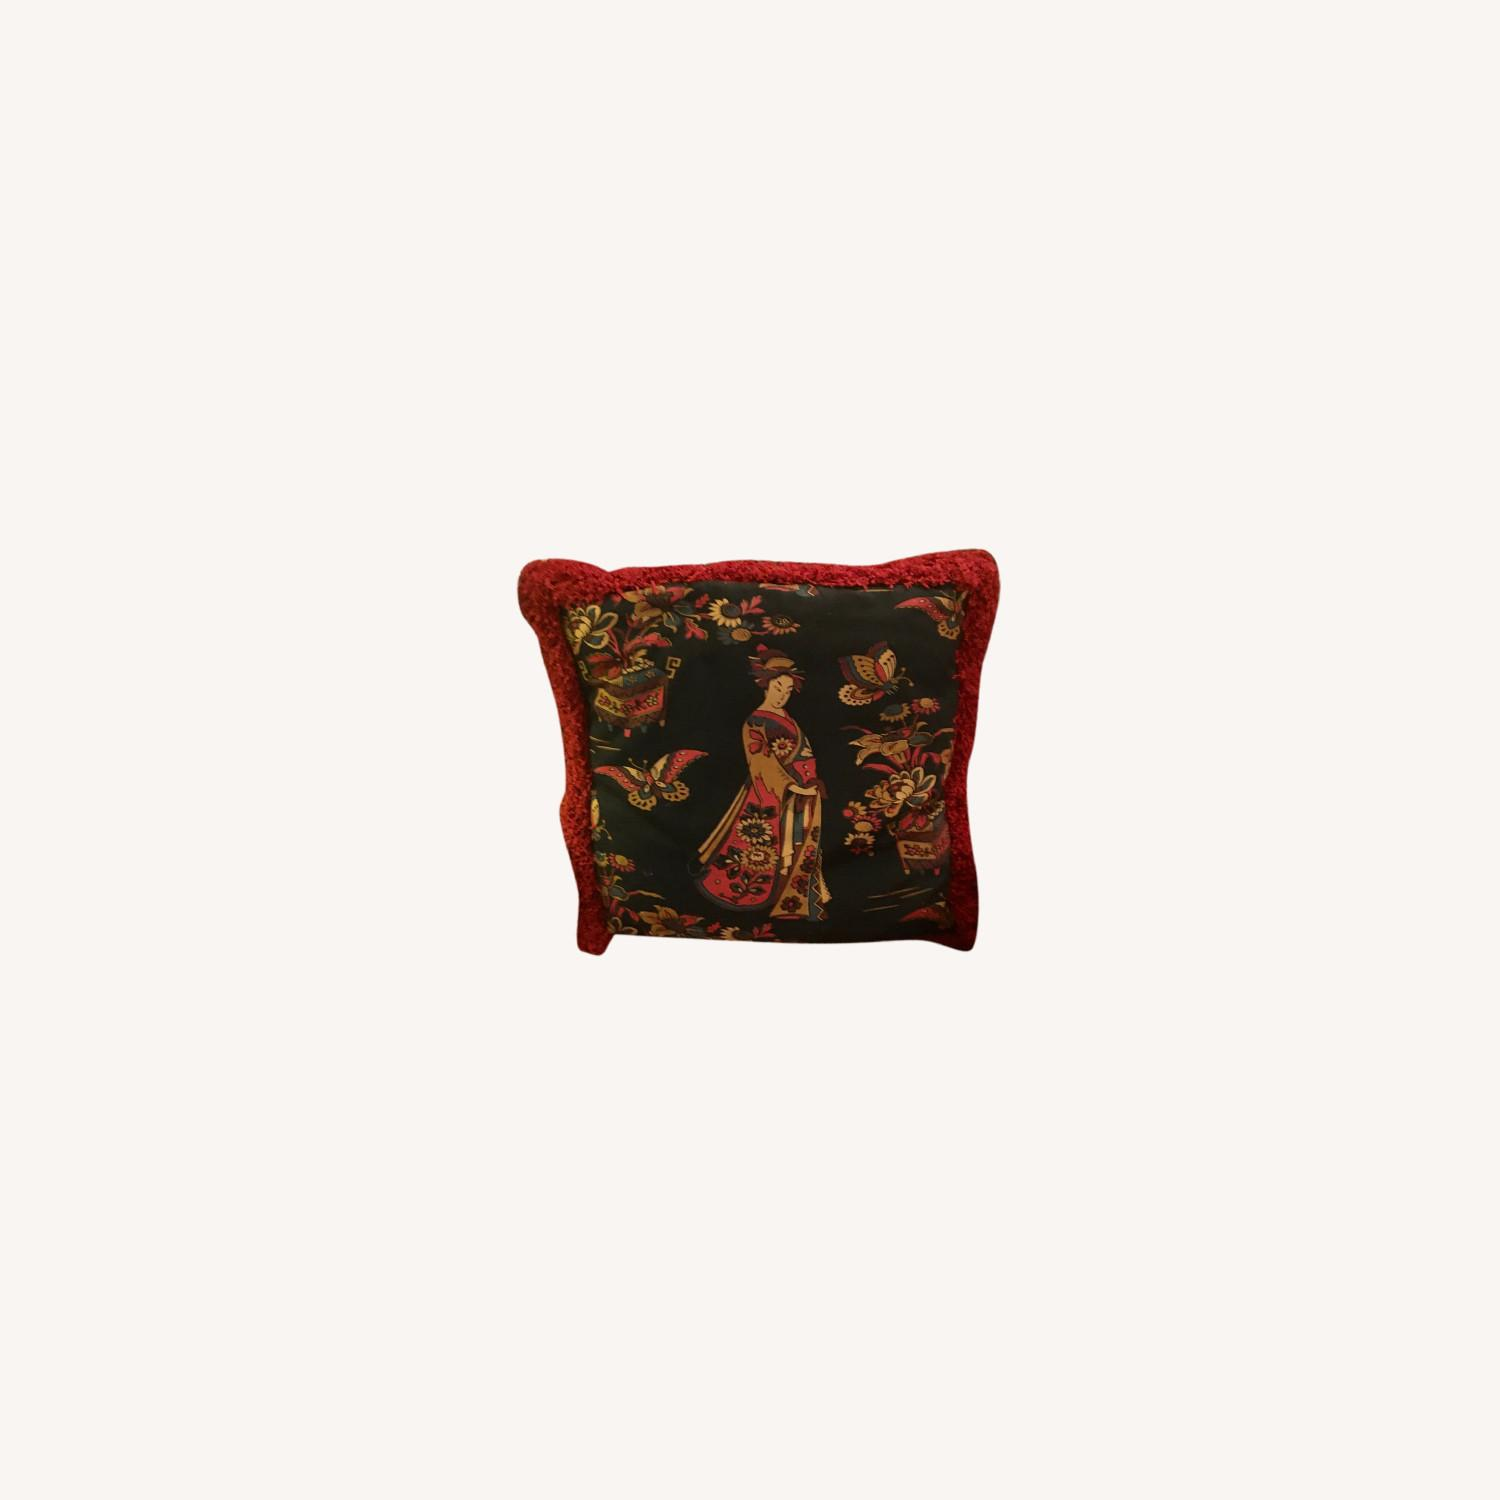 Multi-colored Decorative Pillow with Geisha - image-0